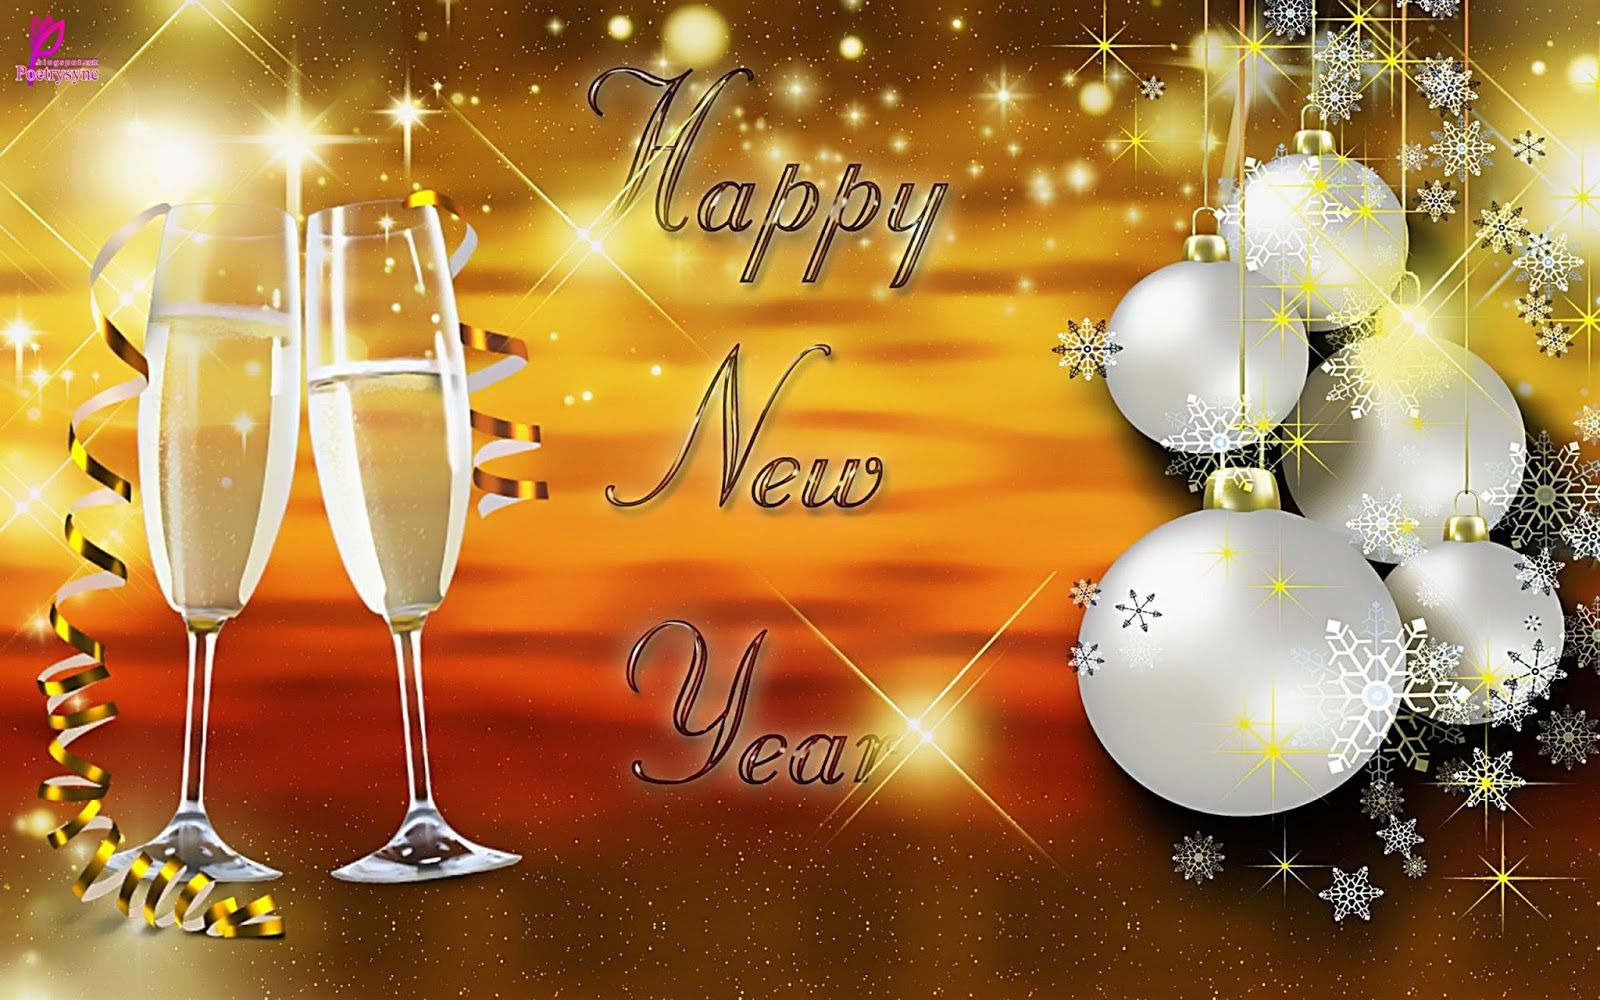 Happy new year message happy new year and christmas wishes 2014 happy new year message happy new year and christmas wishes 2014 messages with greetings kristyandbryce Gallery